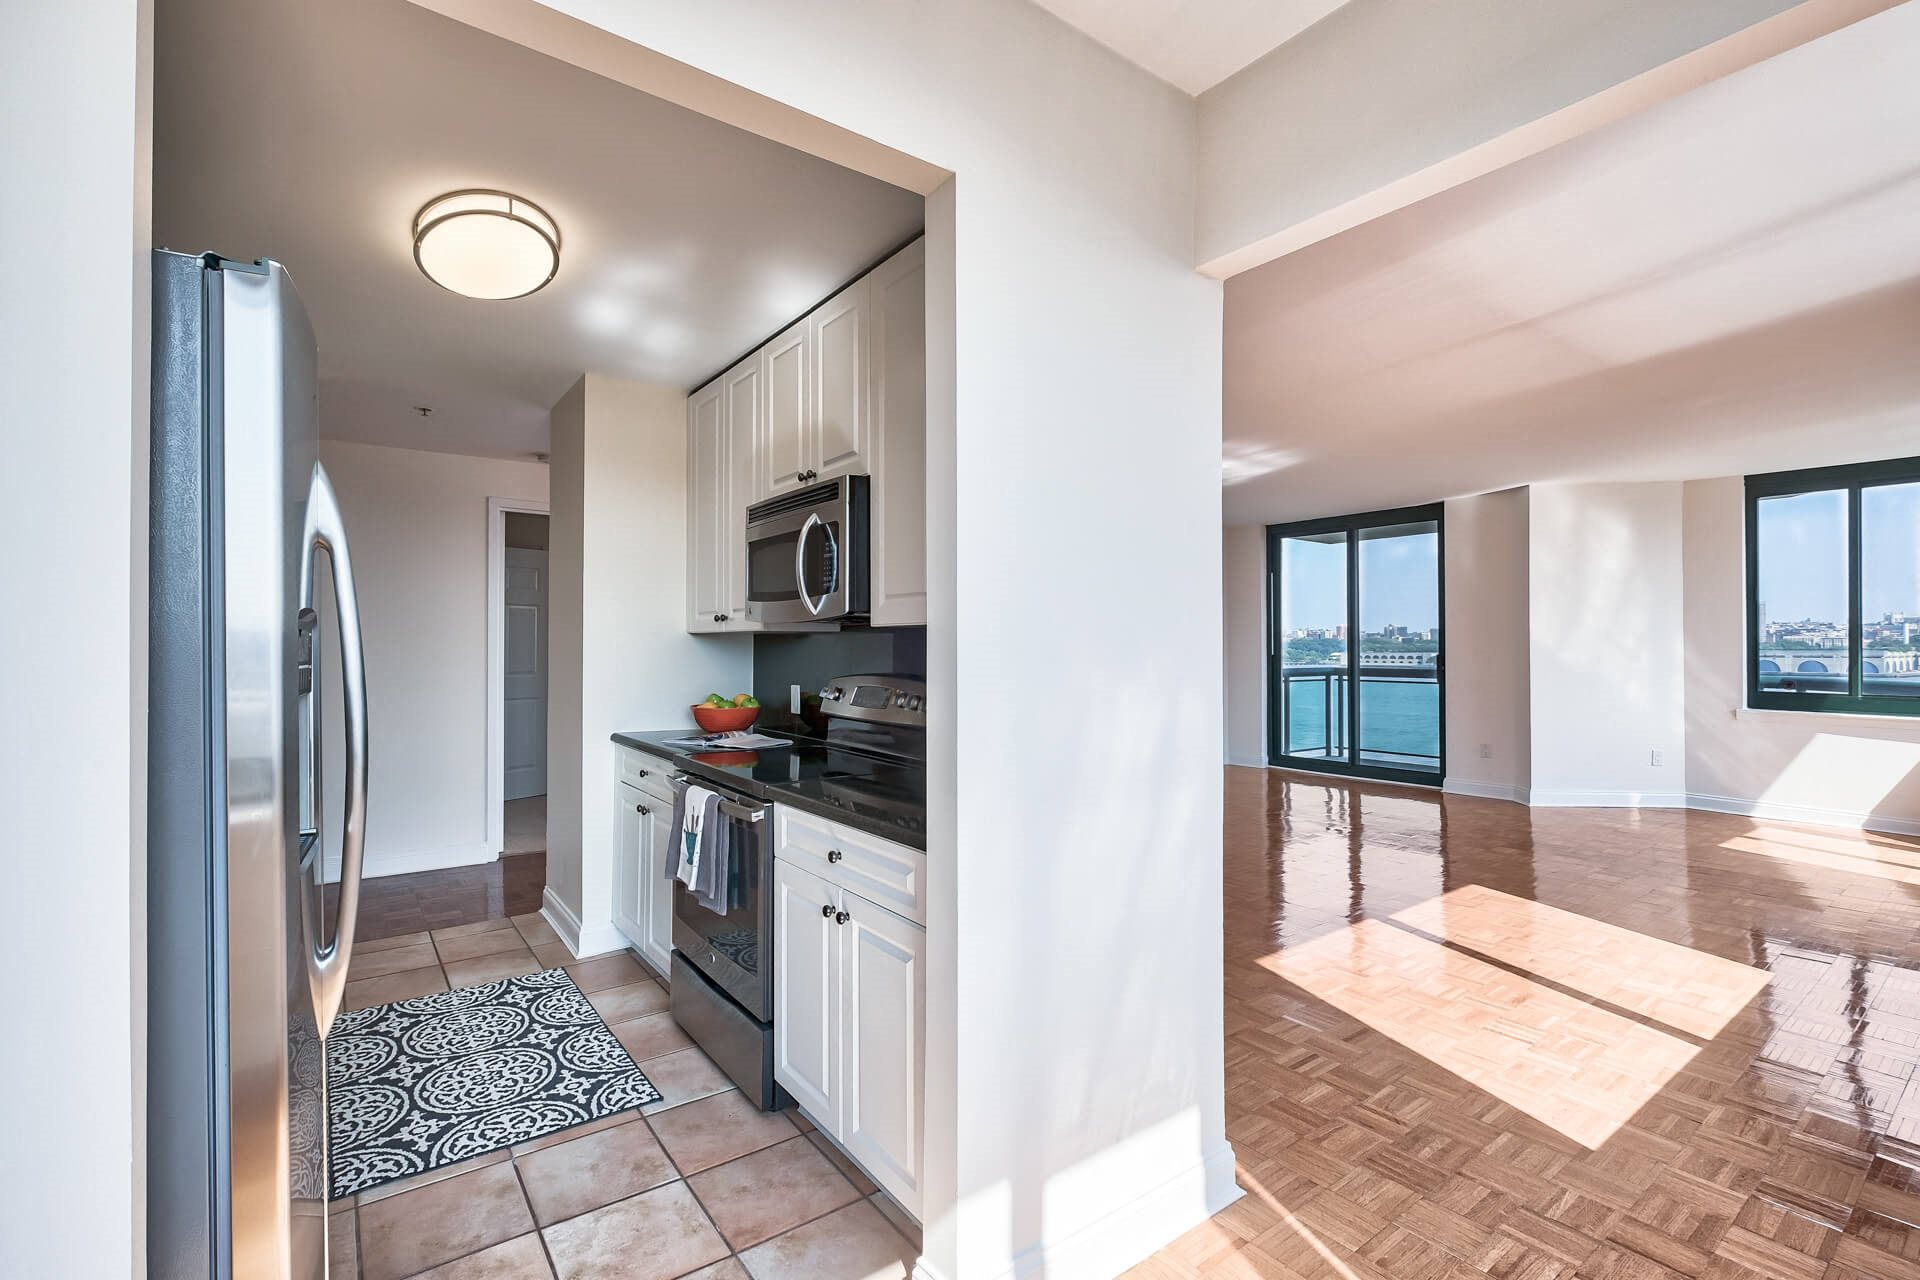 8 foot ceilings in apartments at Windsor at Mariners, Edgewater, New Jersey